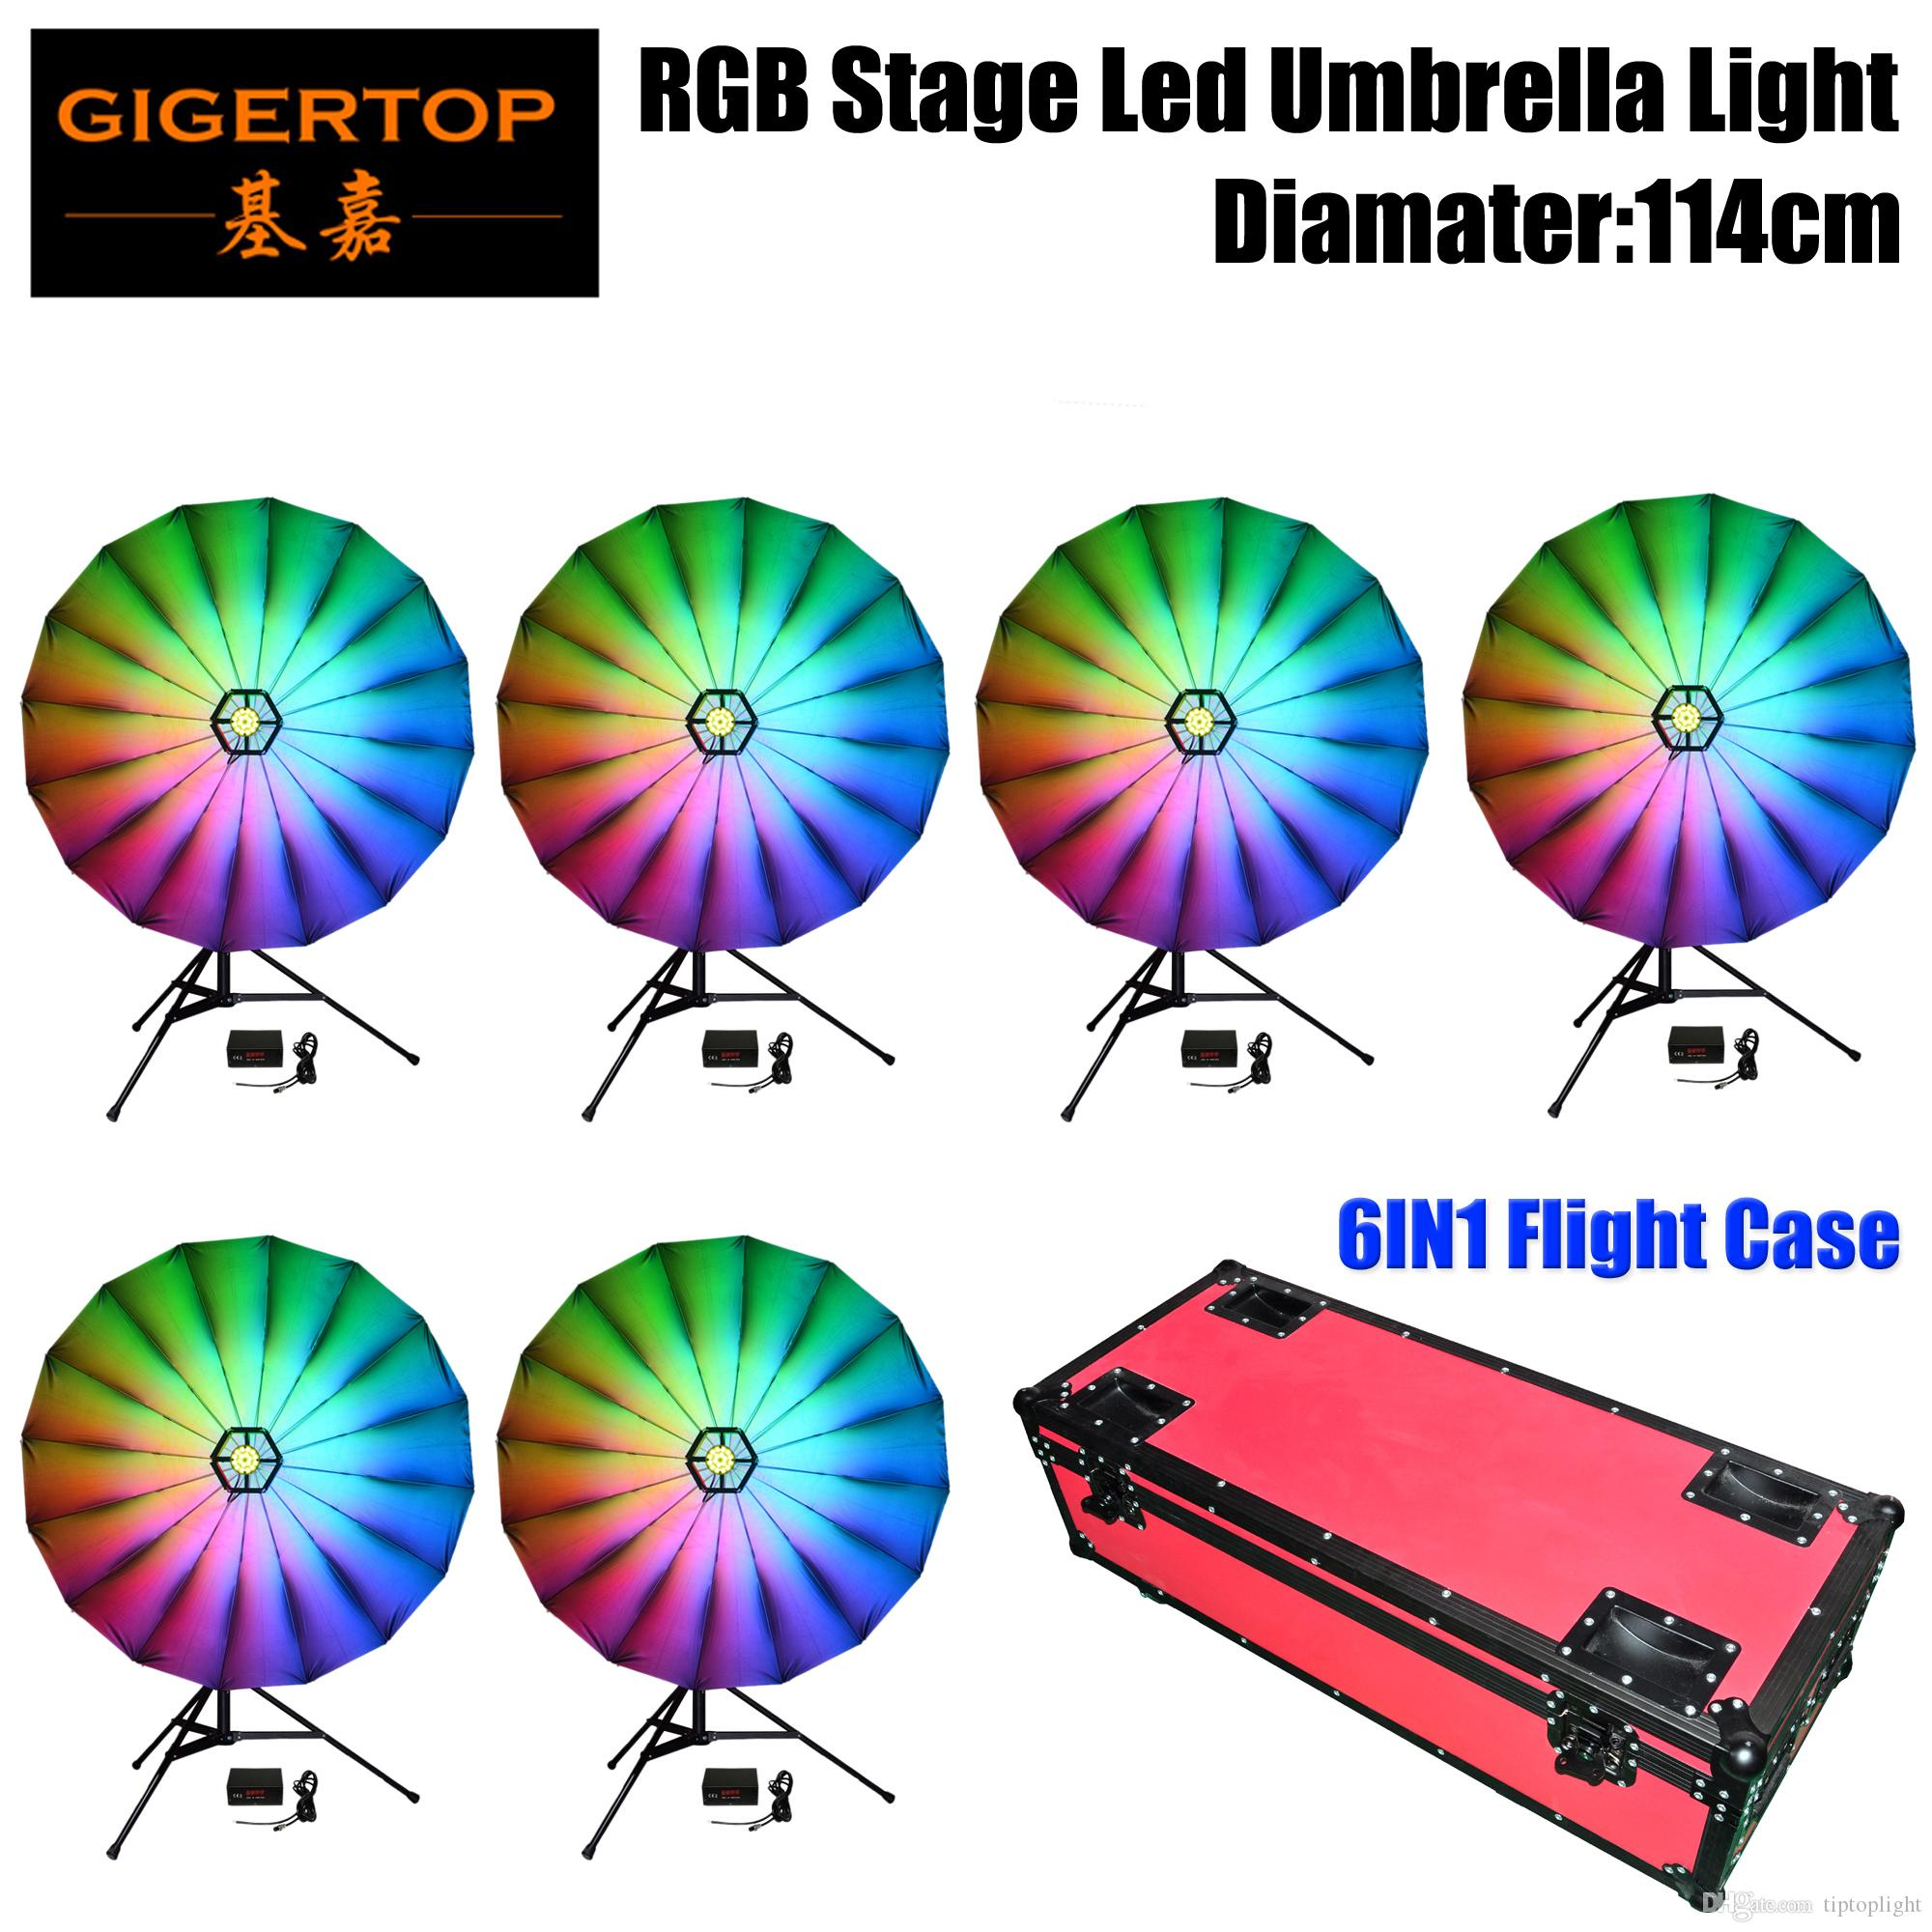 Commercial Lighting Gigertop Tp-hu526 12w Rgb Led Umbrella Lighting Silver Color Reflector Surface Dmx Controller Box Build In Program Party Wedding